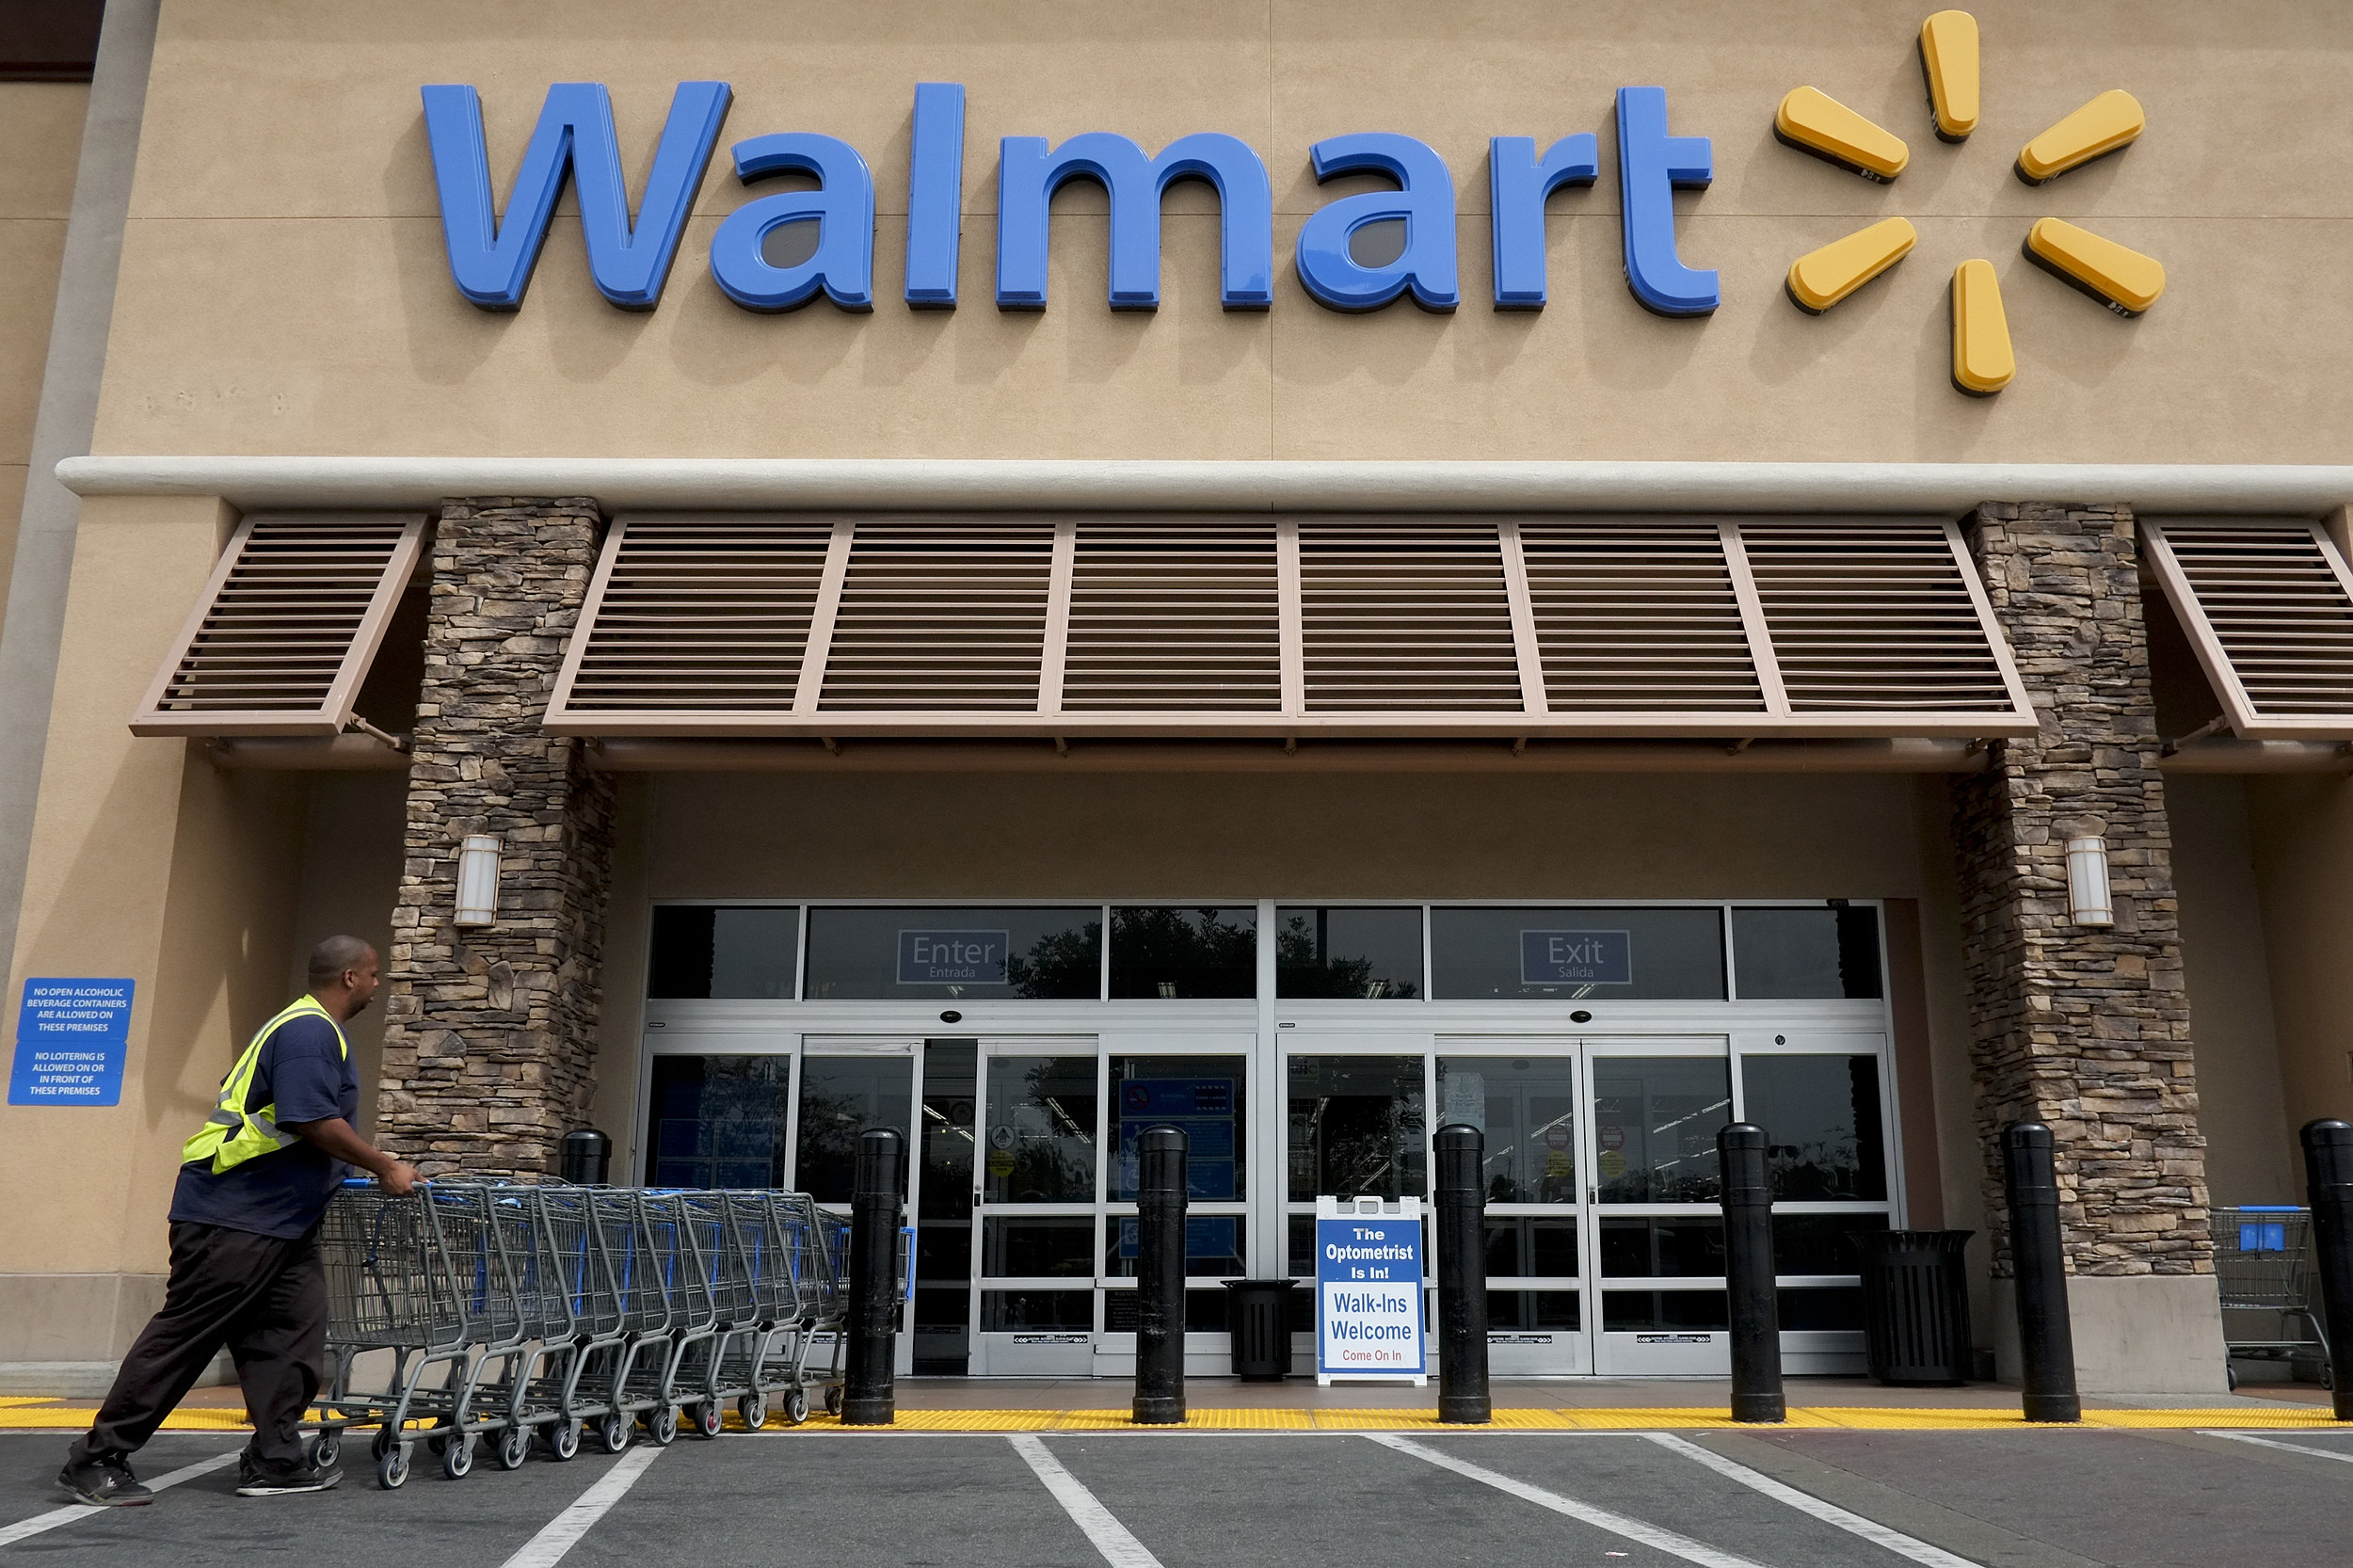 A Look At Recent Insider Trades For Wal-Mart Stores, Inc. (WMT)